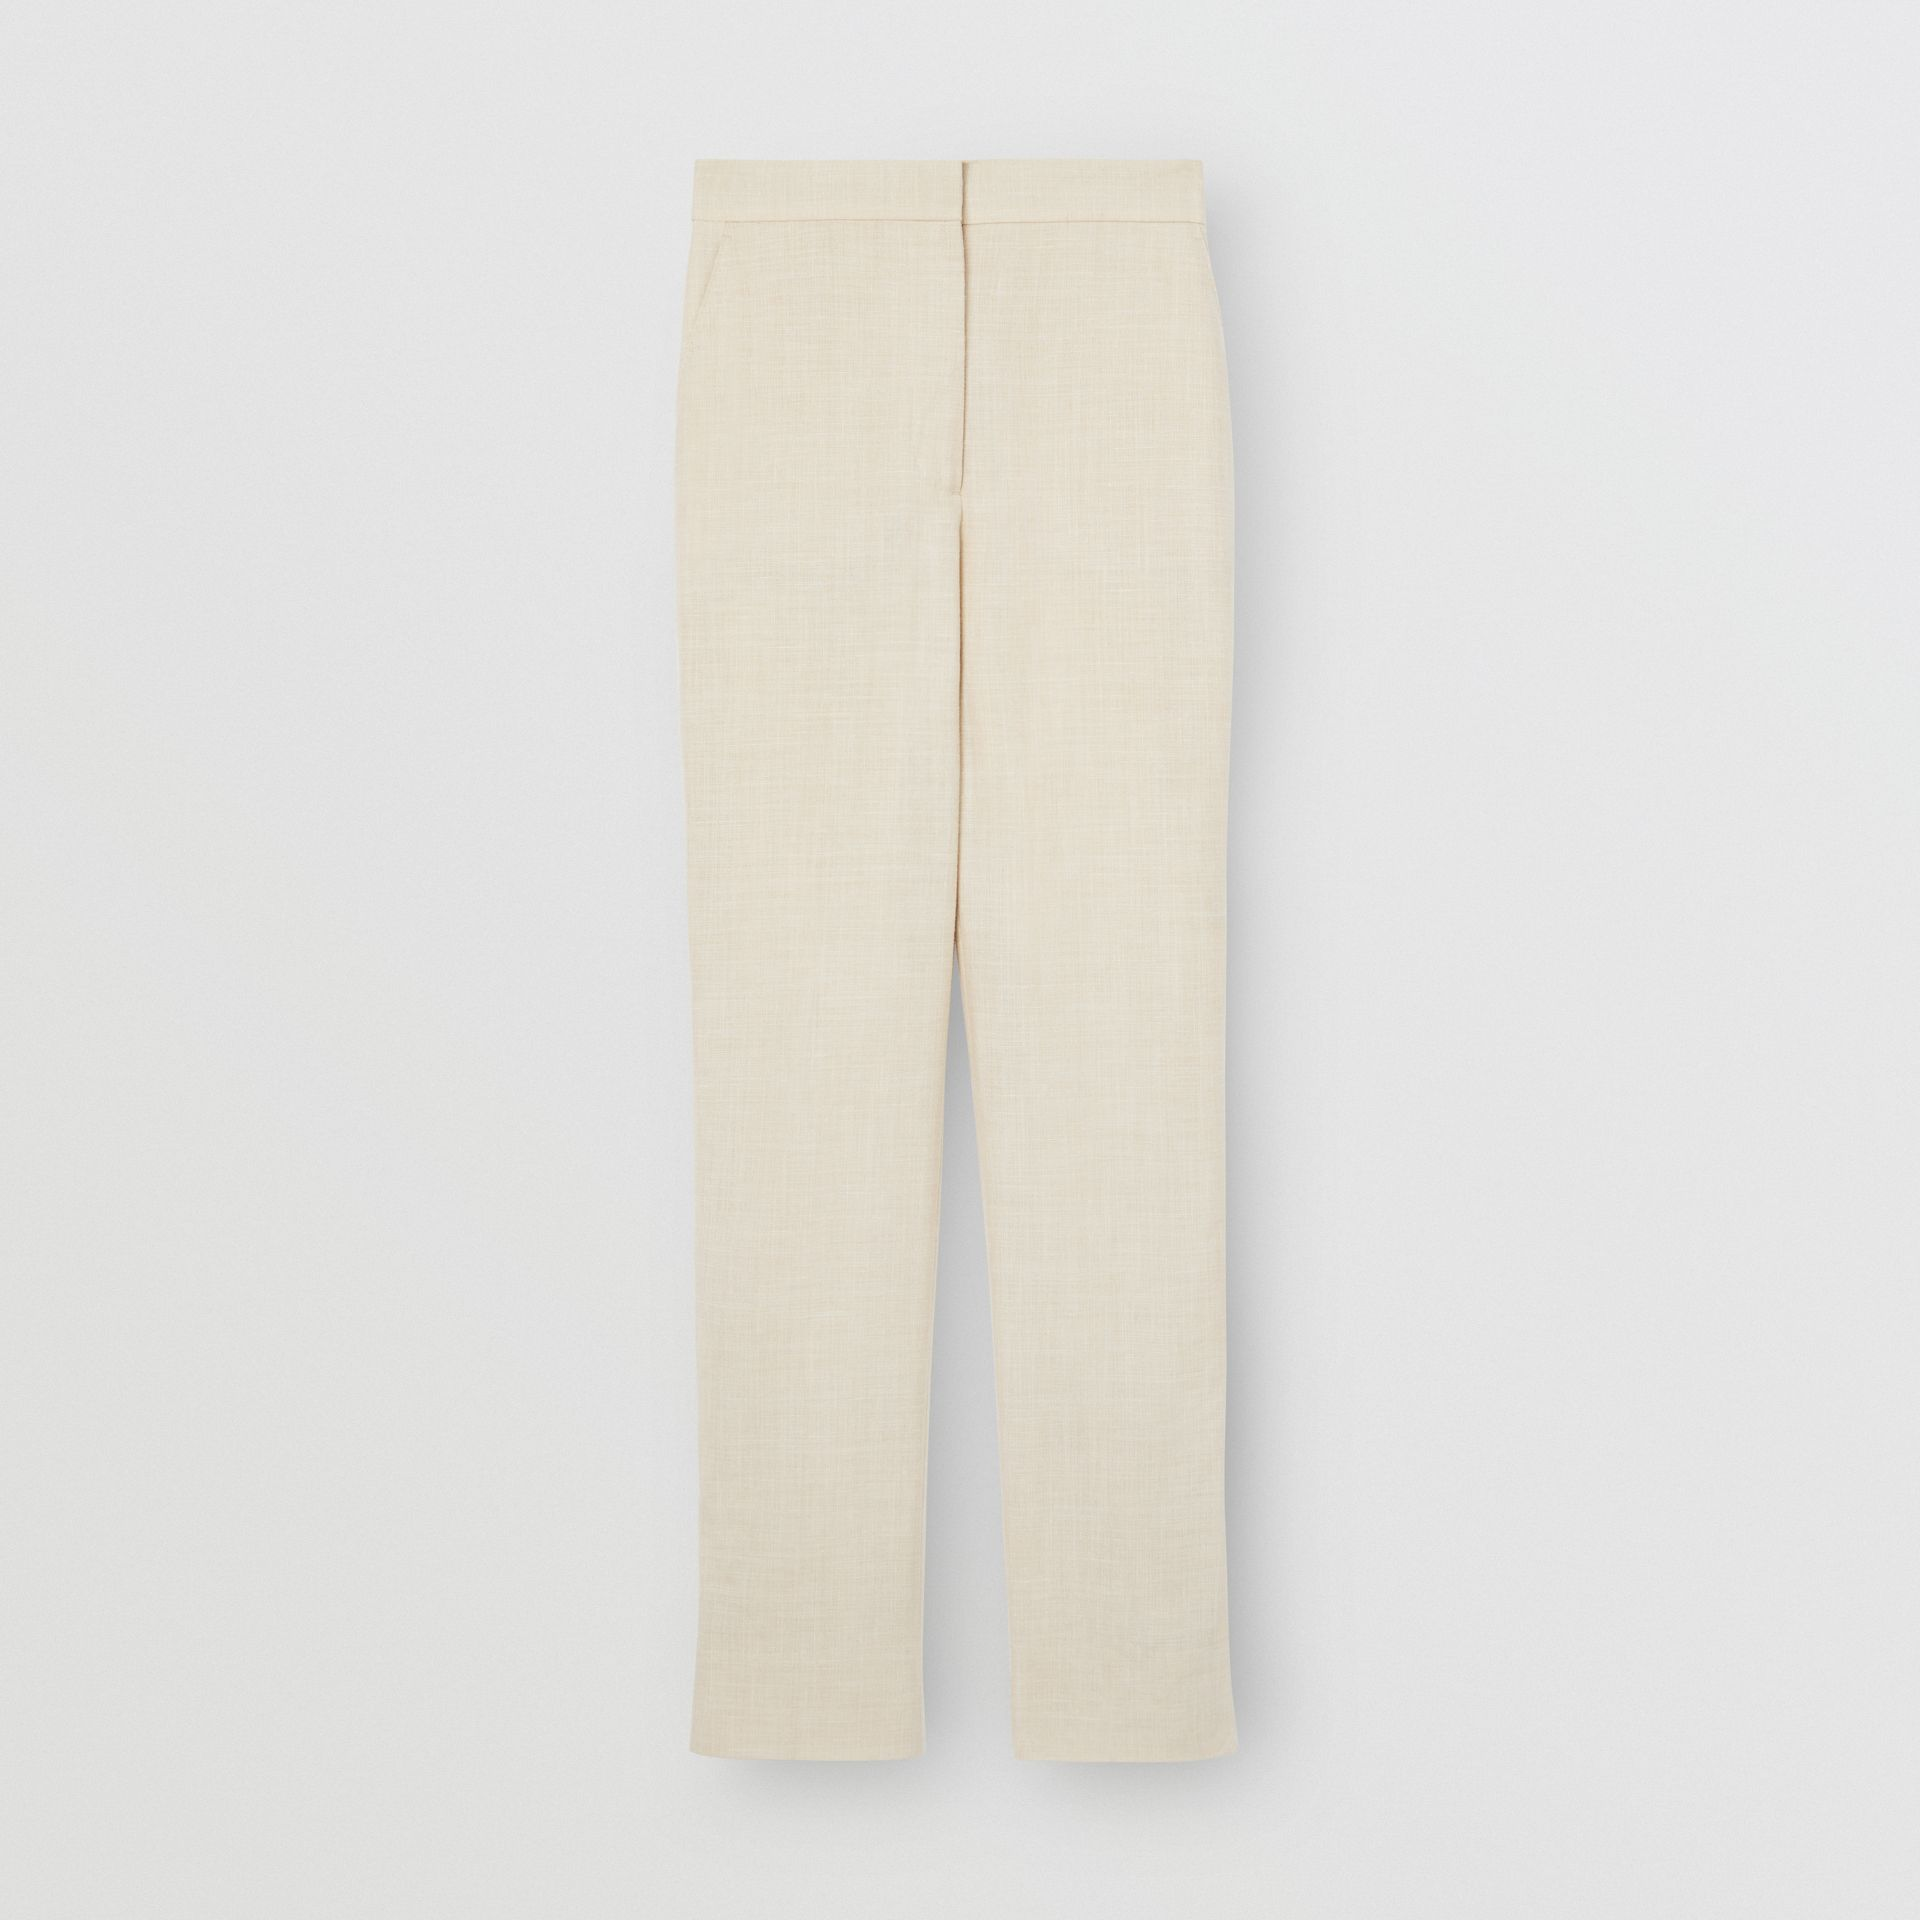 Stripe Detail Wool Silk Linen Tailored Trousers in Sesame - Women | Burberry United States - gallery image 3